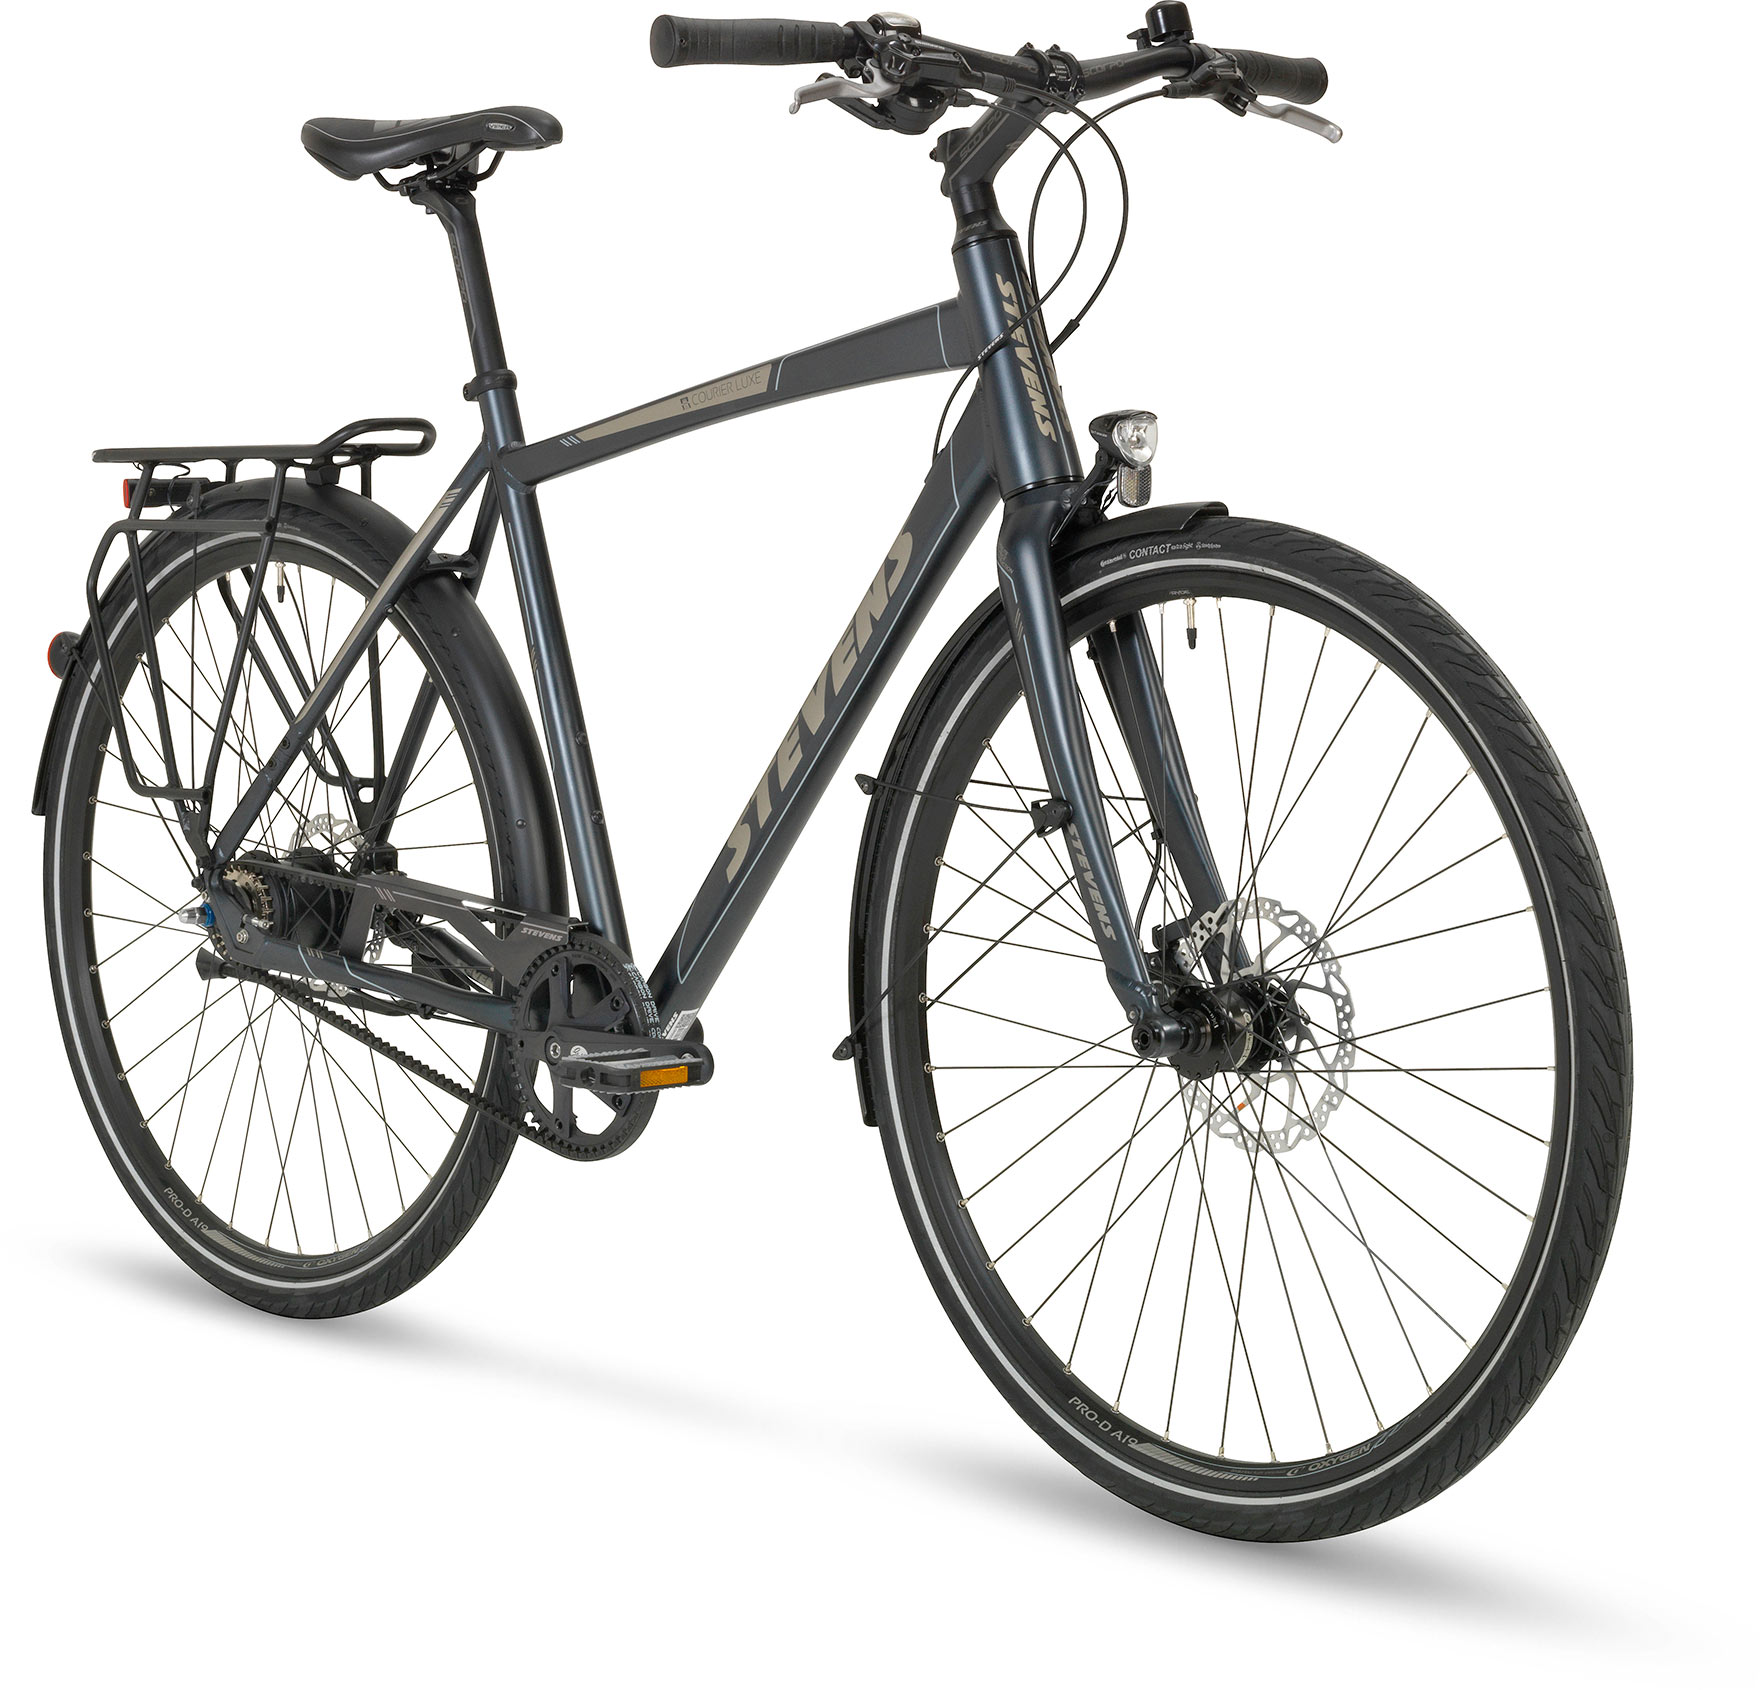 Courier Luxe Gent Stevens Bikes 2017